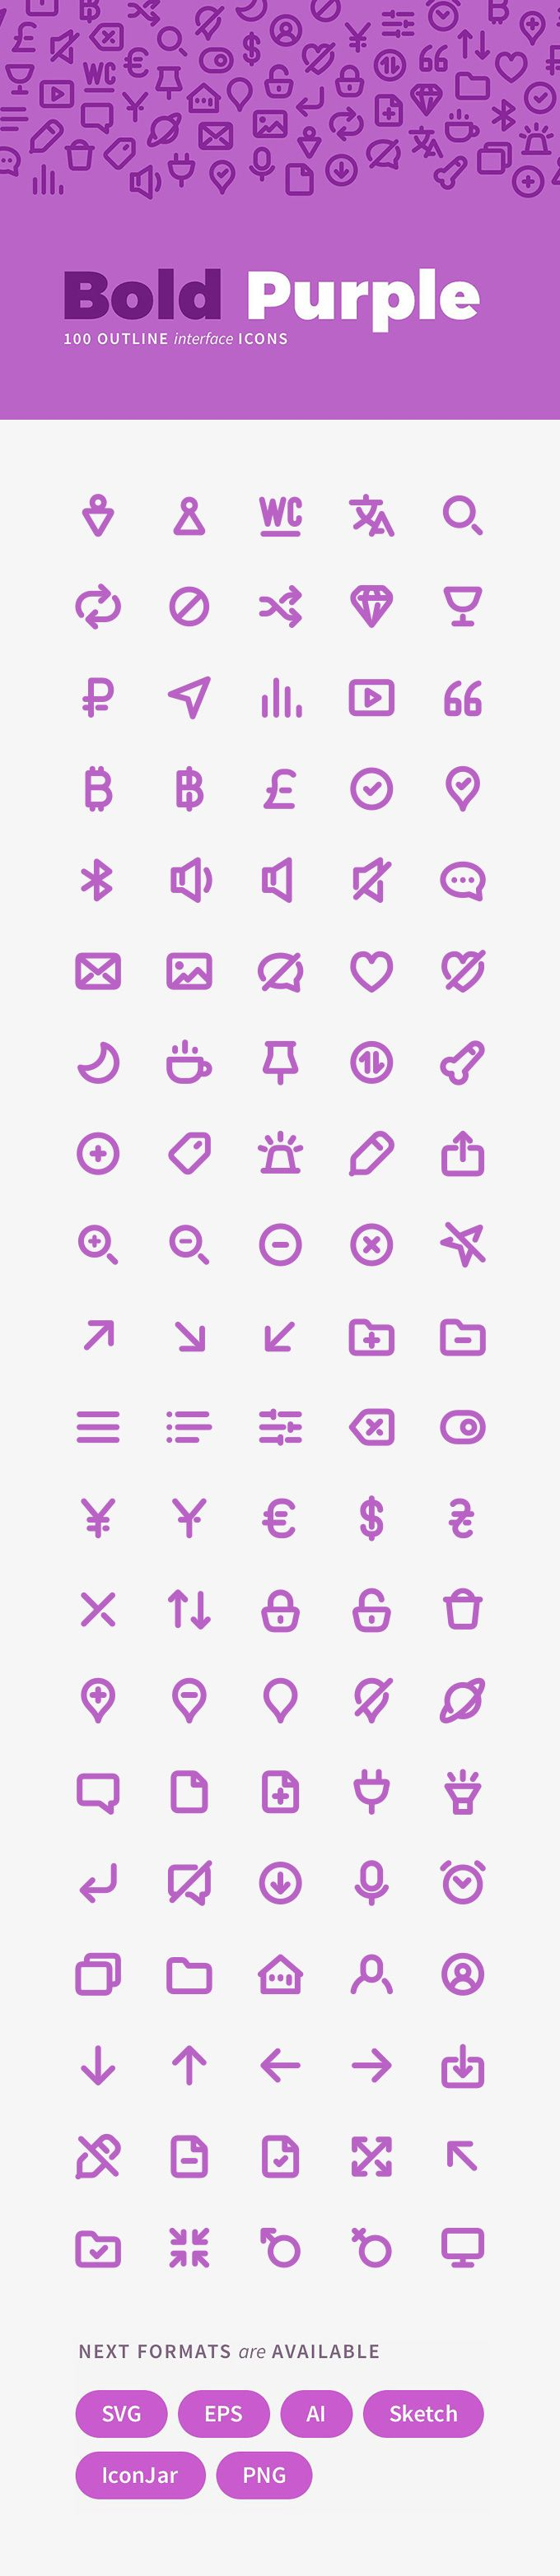 Free outline icon set in purple — download SVG, EPS, AI